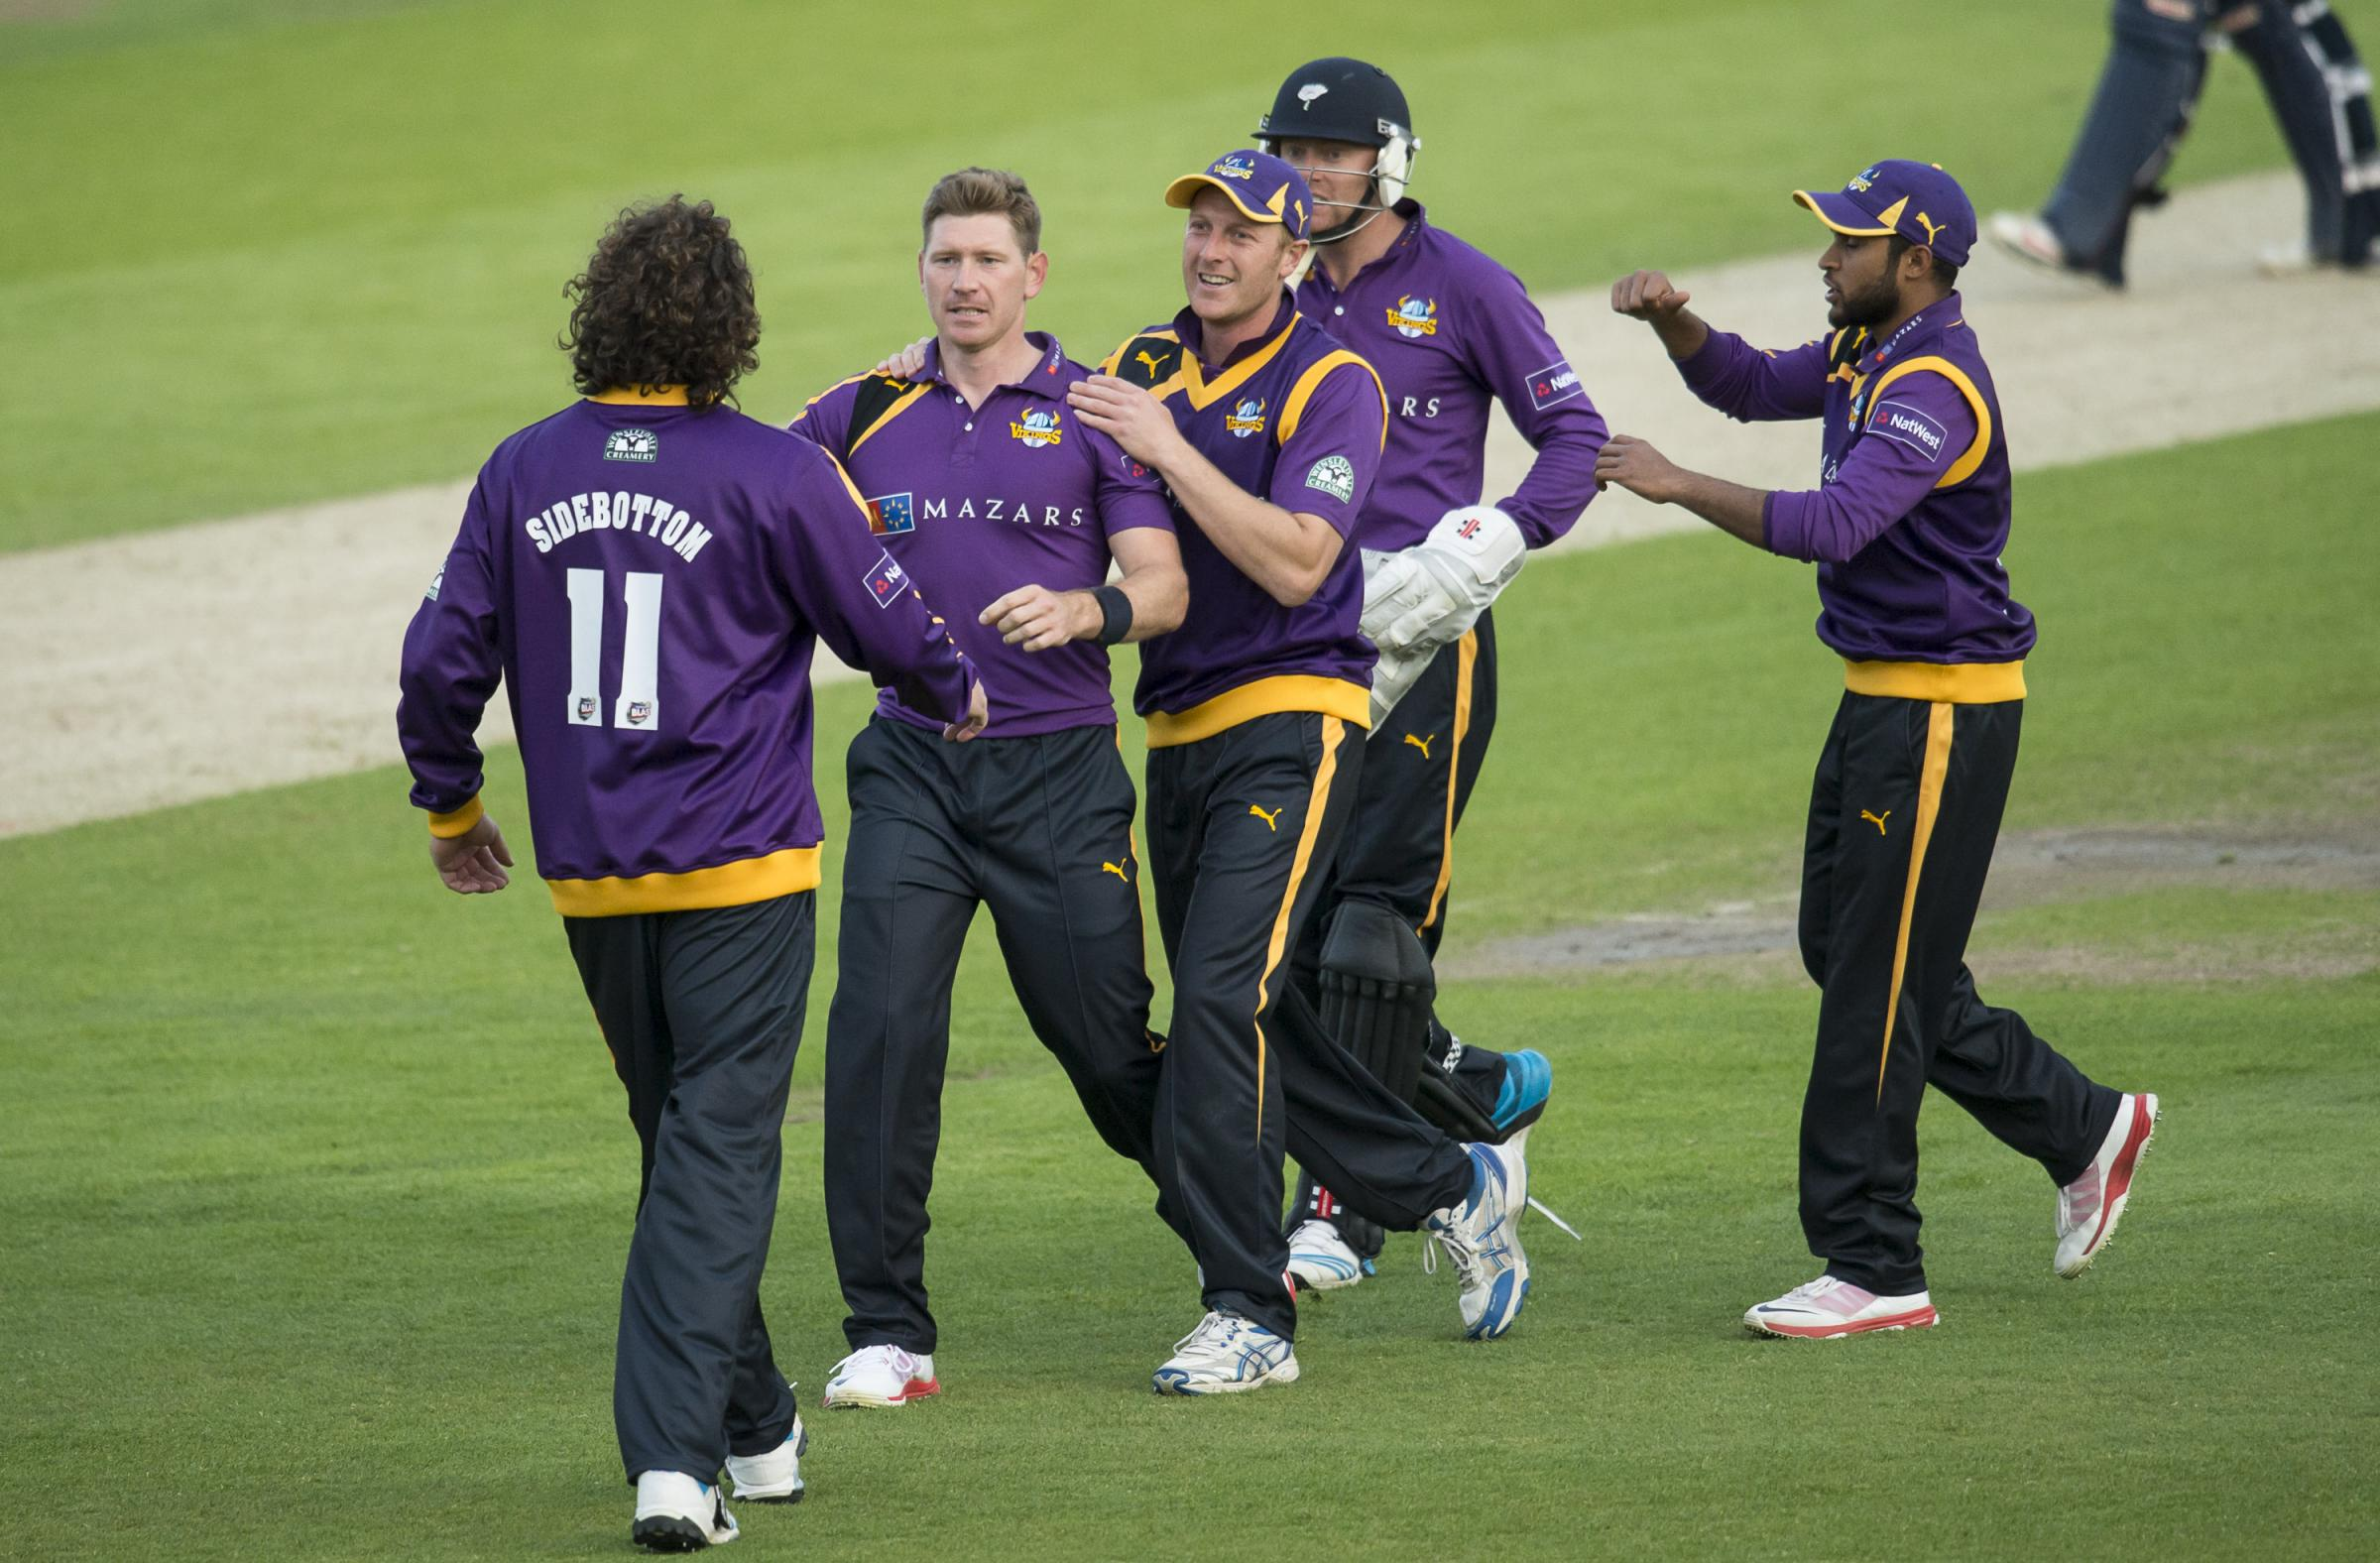 Yorkshire Vikings' Rich Pyrah celebrates a wicket during the NatWest T20 Blast defeat by Northamptonshire